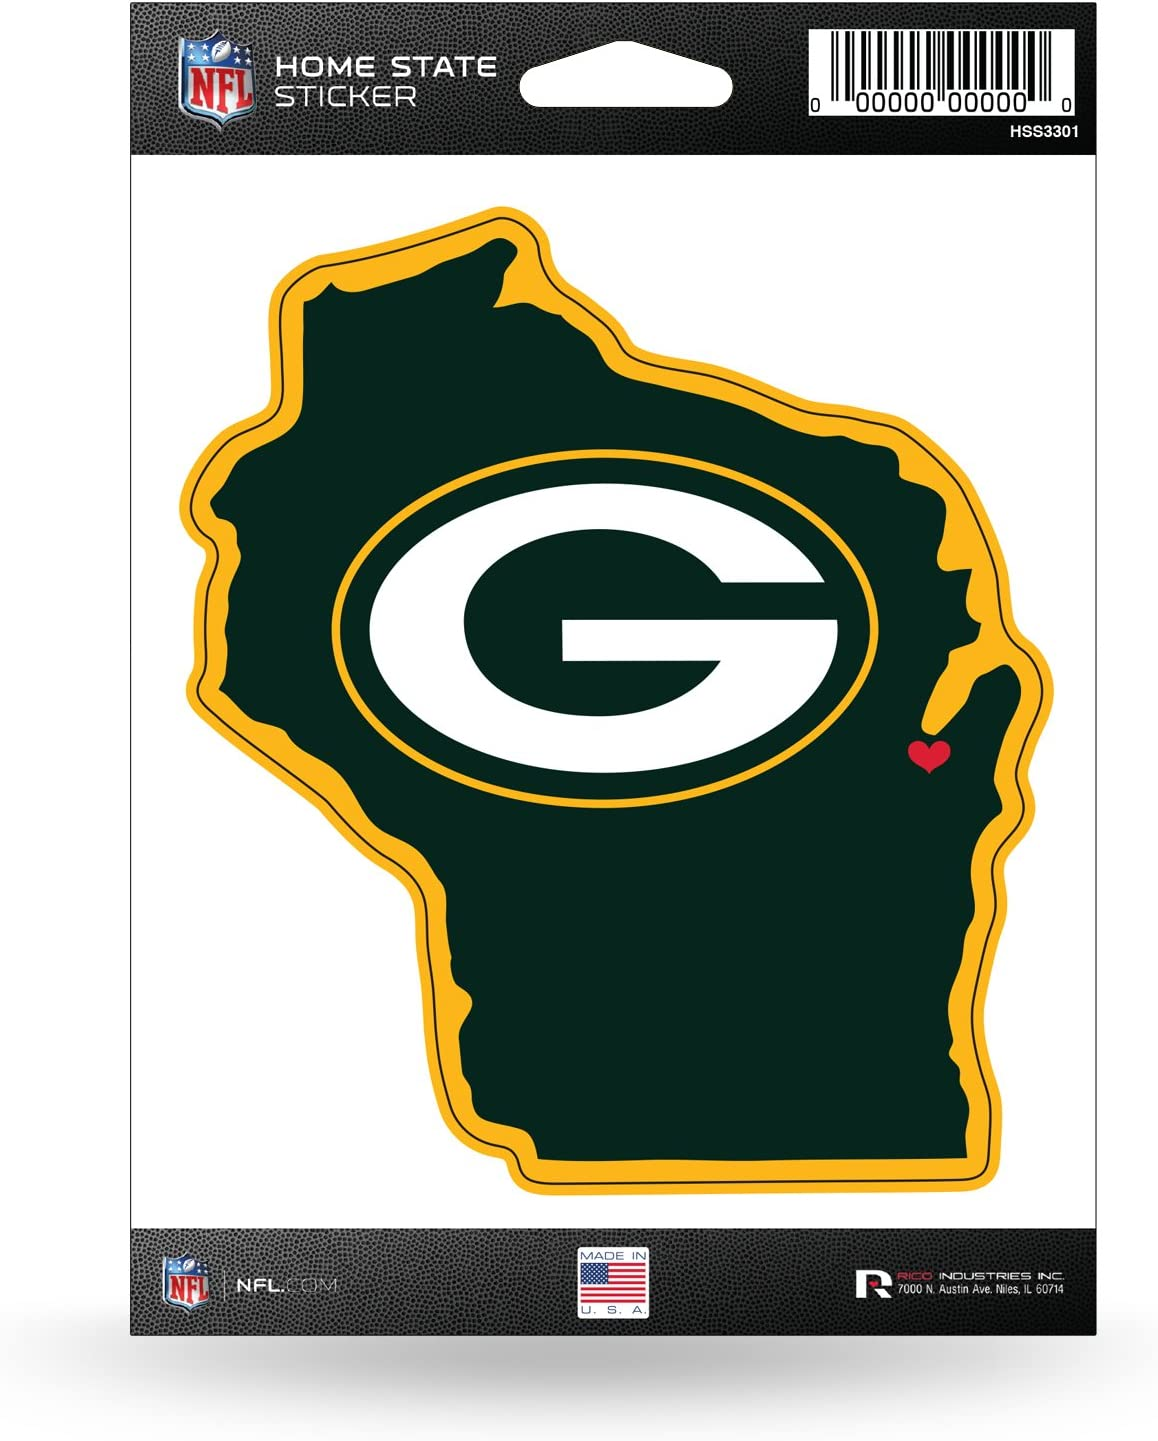 NFL Rico Industries Home State Sticker, Green Bay Packers Team Color, 5.75 x 8-inches